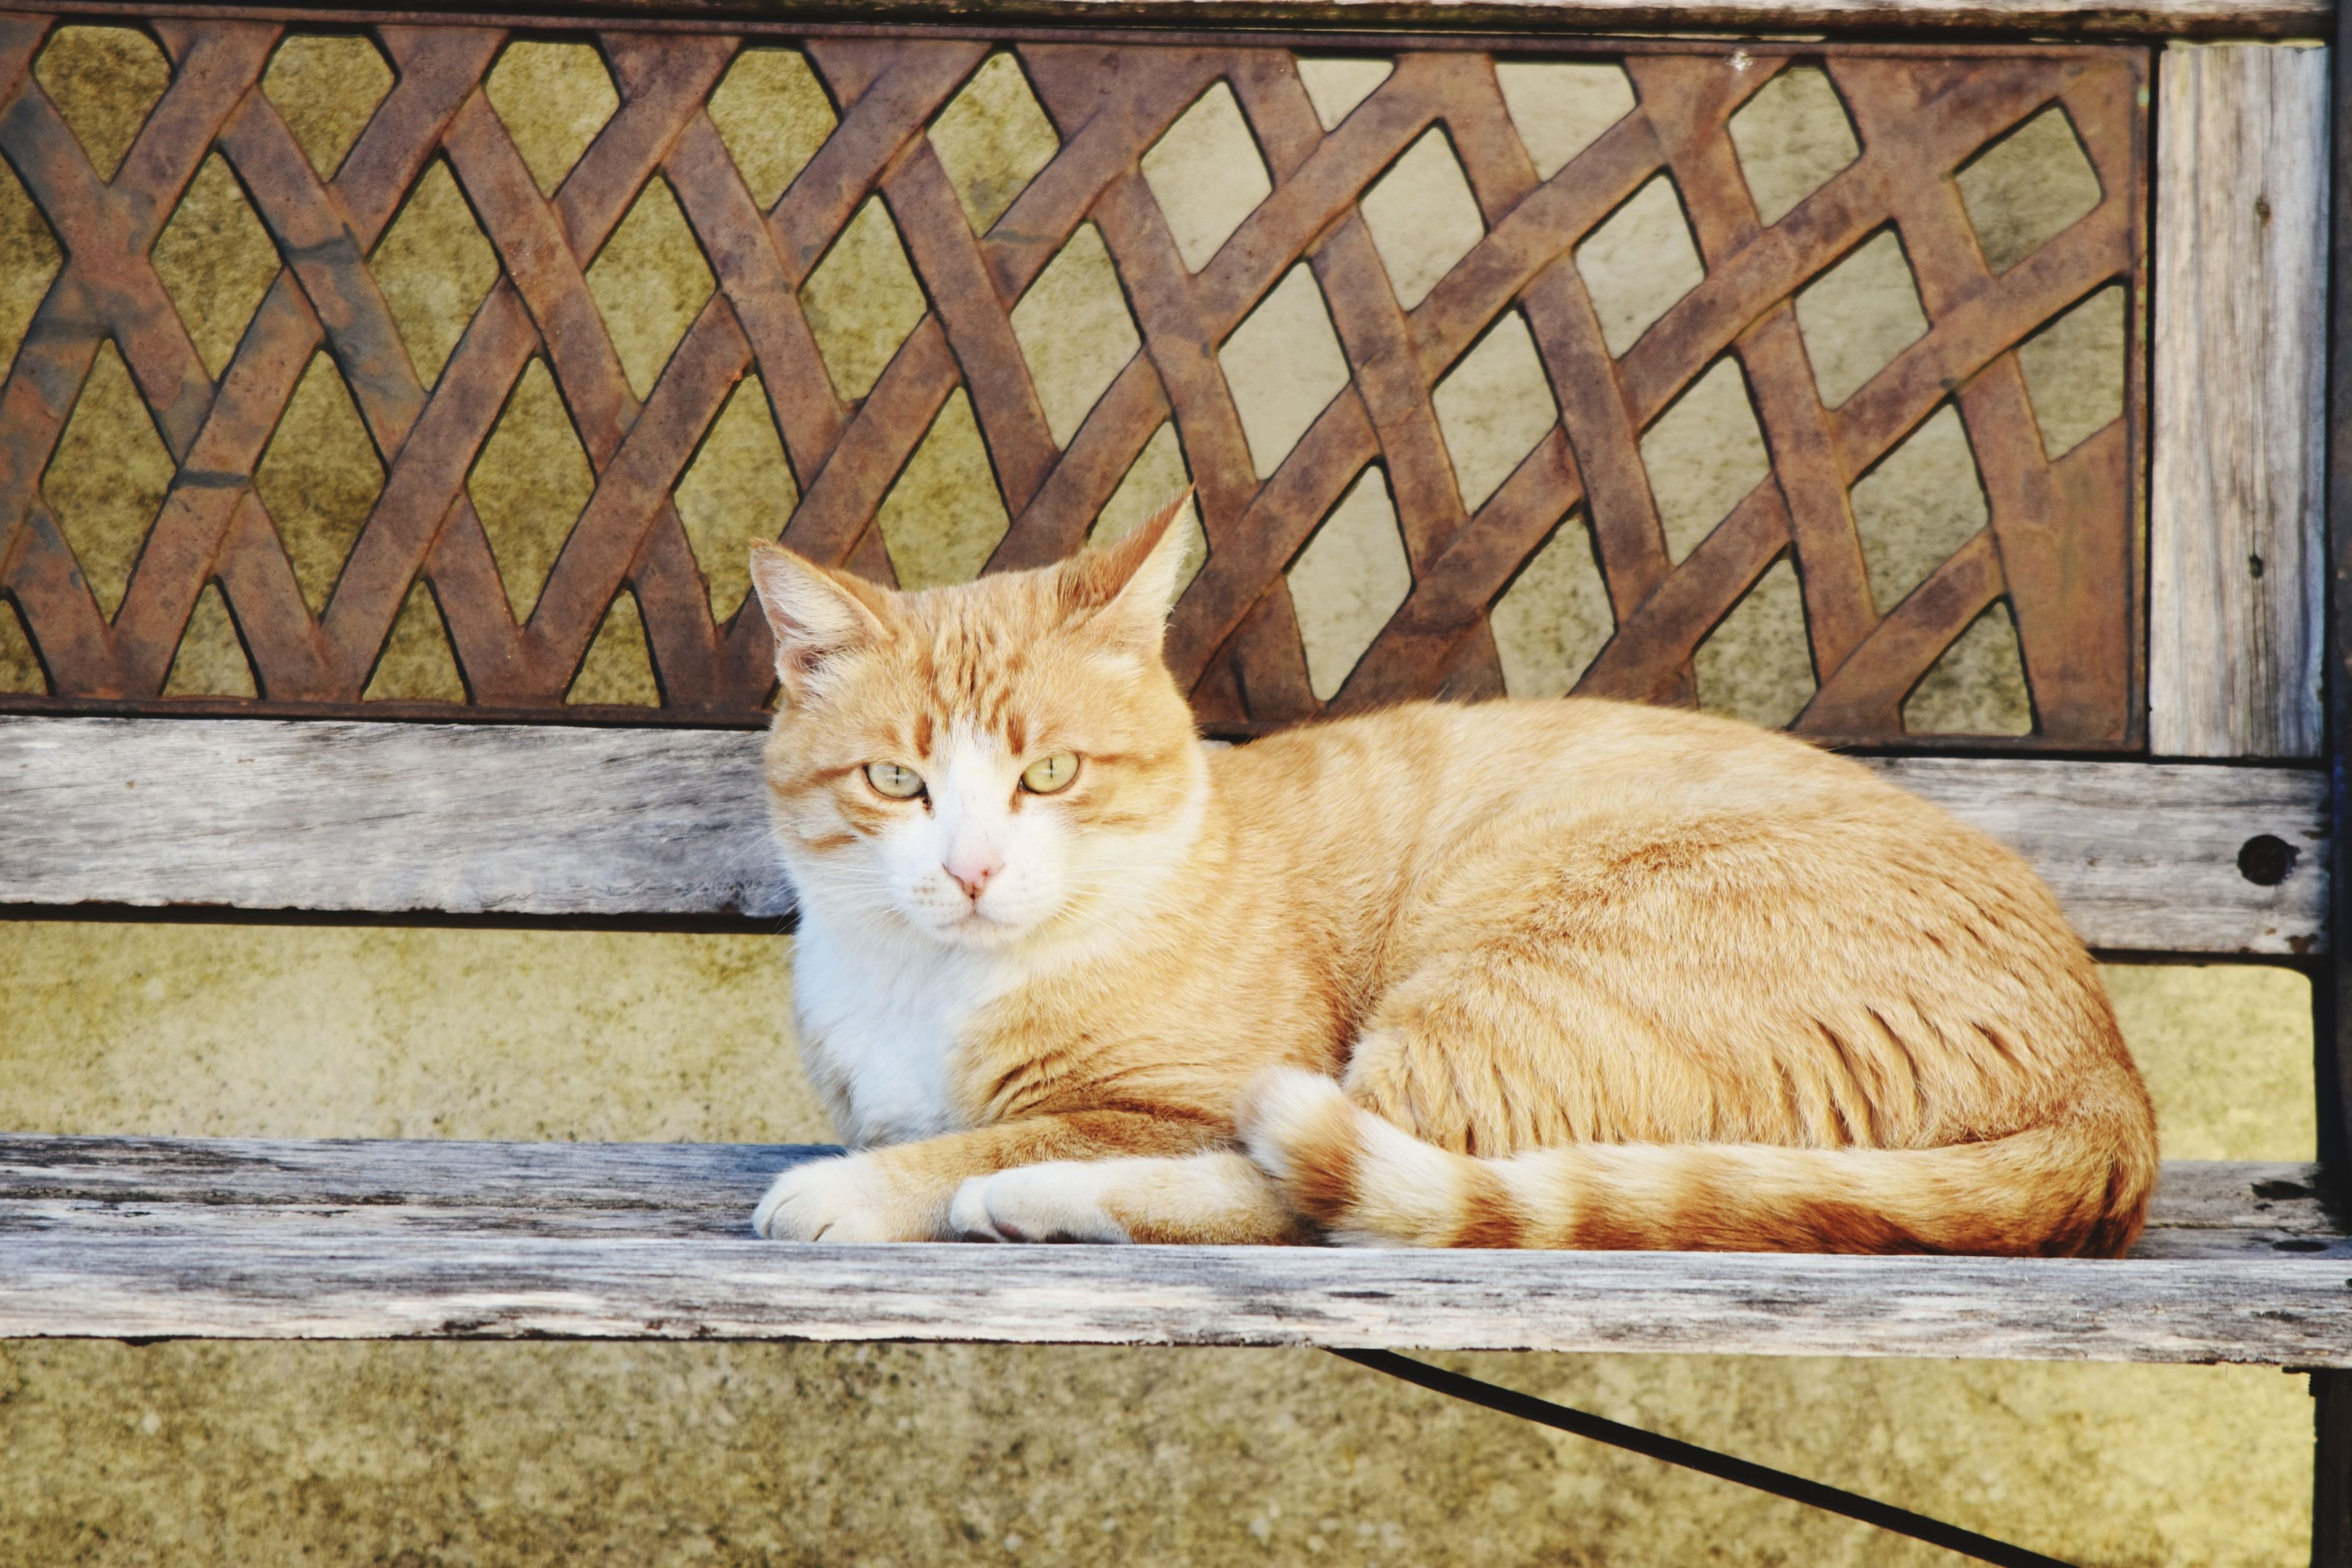 domestic cat, one animal, animal themes, pets, feline, domestic animals, mammal, no people, day, outdoors, relaxation, sitting, ginger cat, portrait, close-up